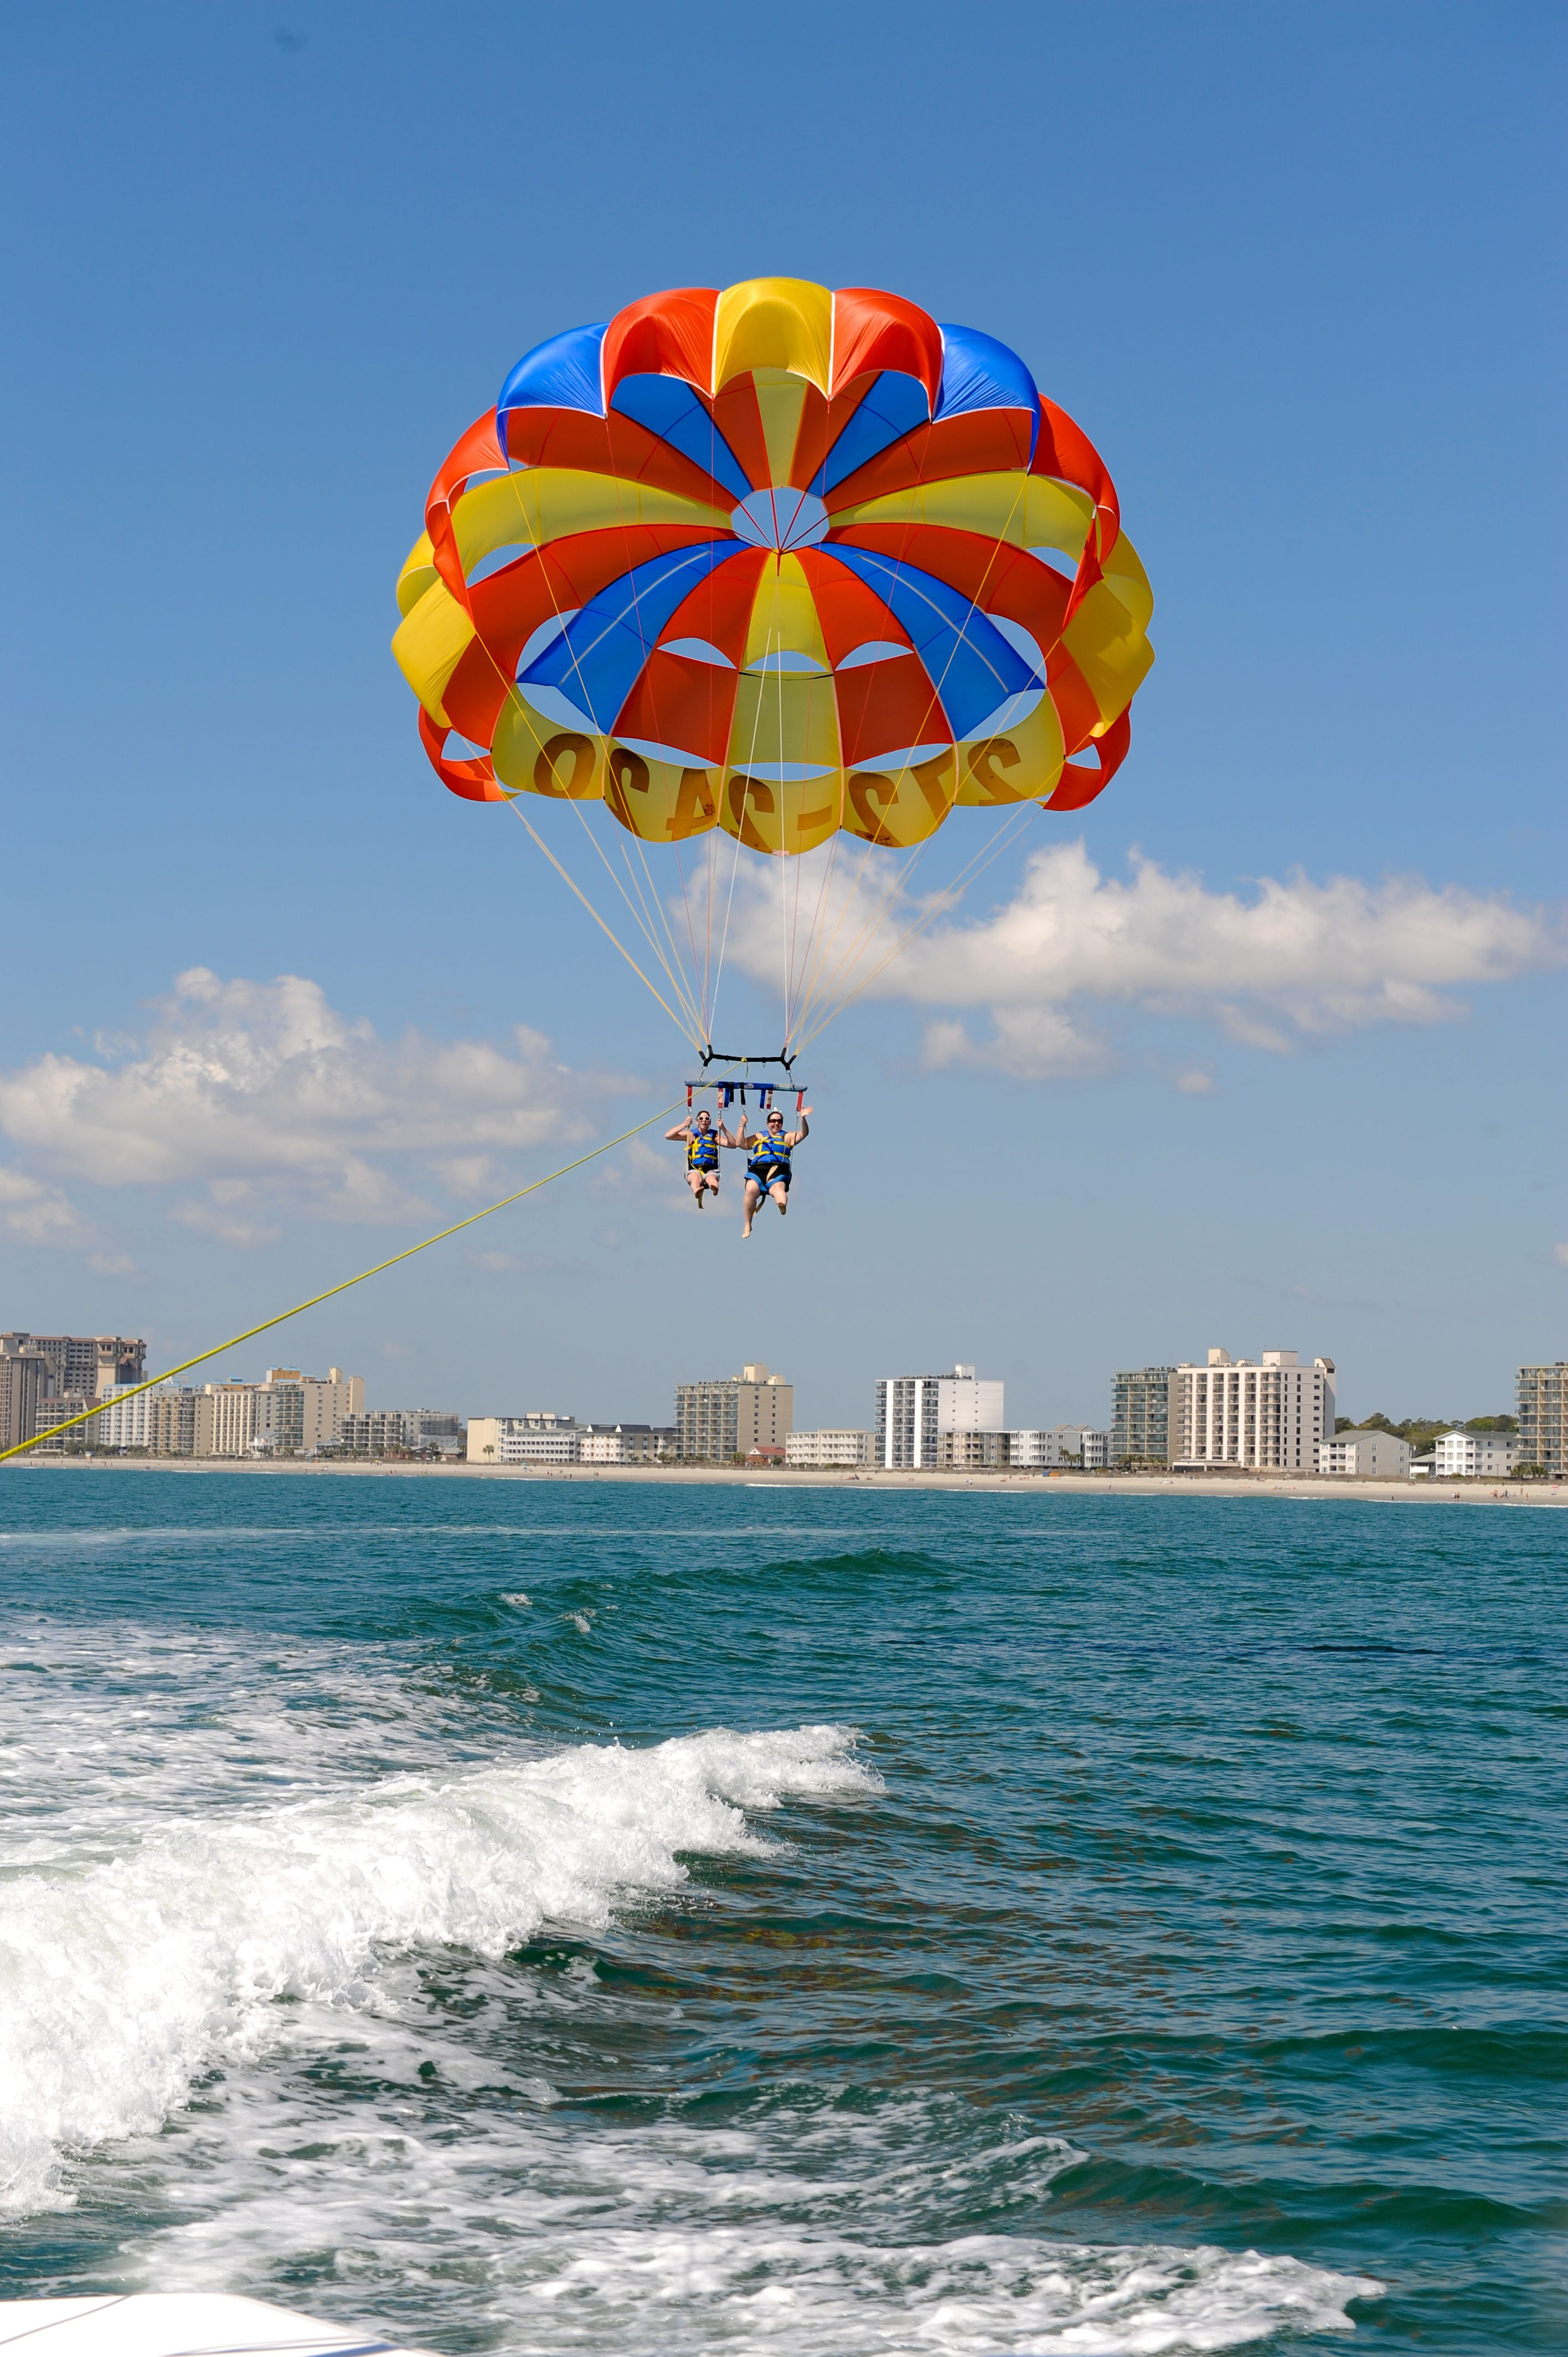 Go Parachuting With Atlantic Water Sports In North Myrtle Beach South Carolina To Www Yourtravelvideos Or Just Click On Photo For Home Videos And